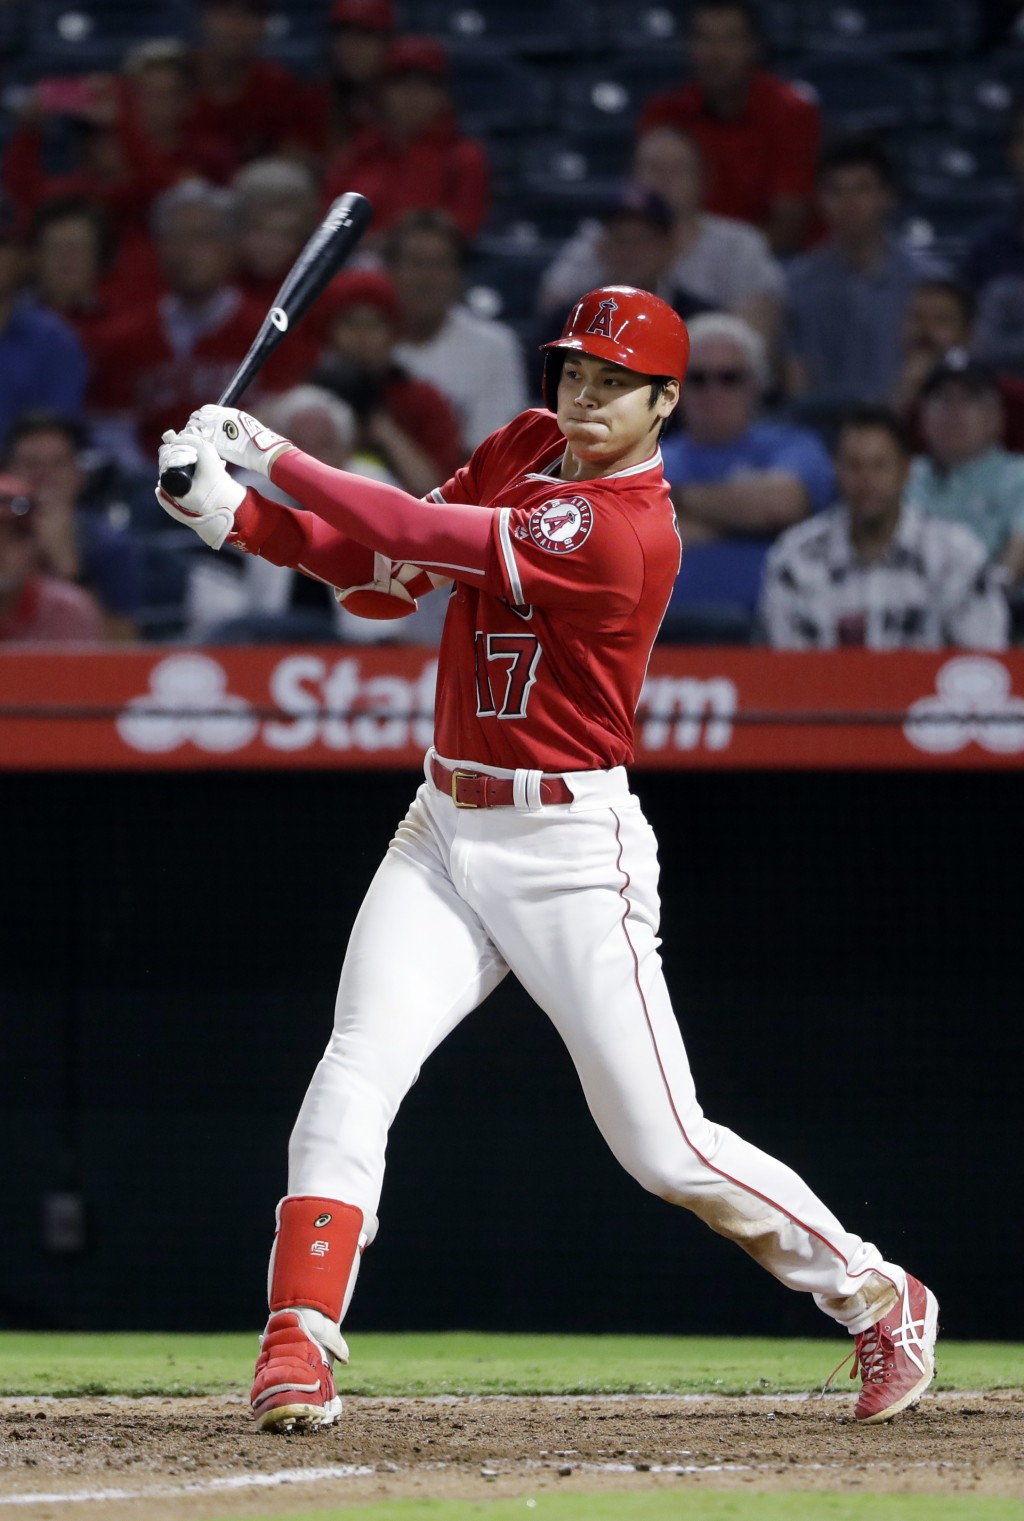 Los Angeles Angels' Shohei Ohtani follows through on an RBI single against the Texas Rangers during the seventh inning of a baseball game, Monday, Sep